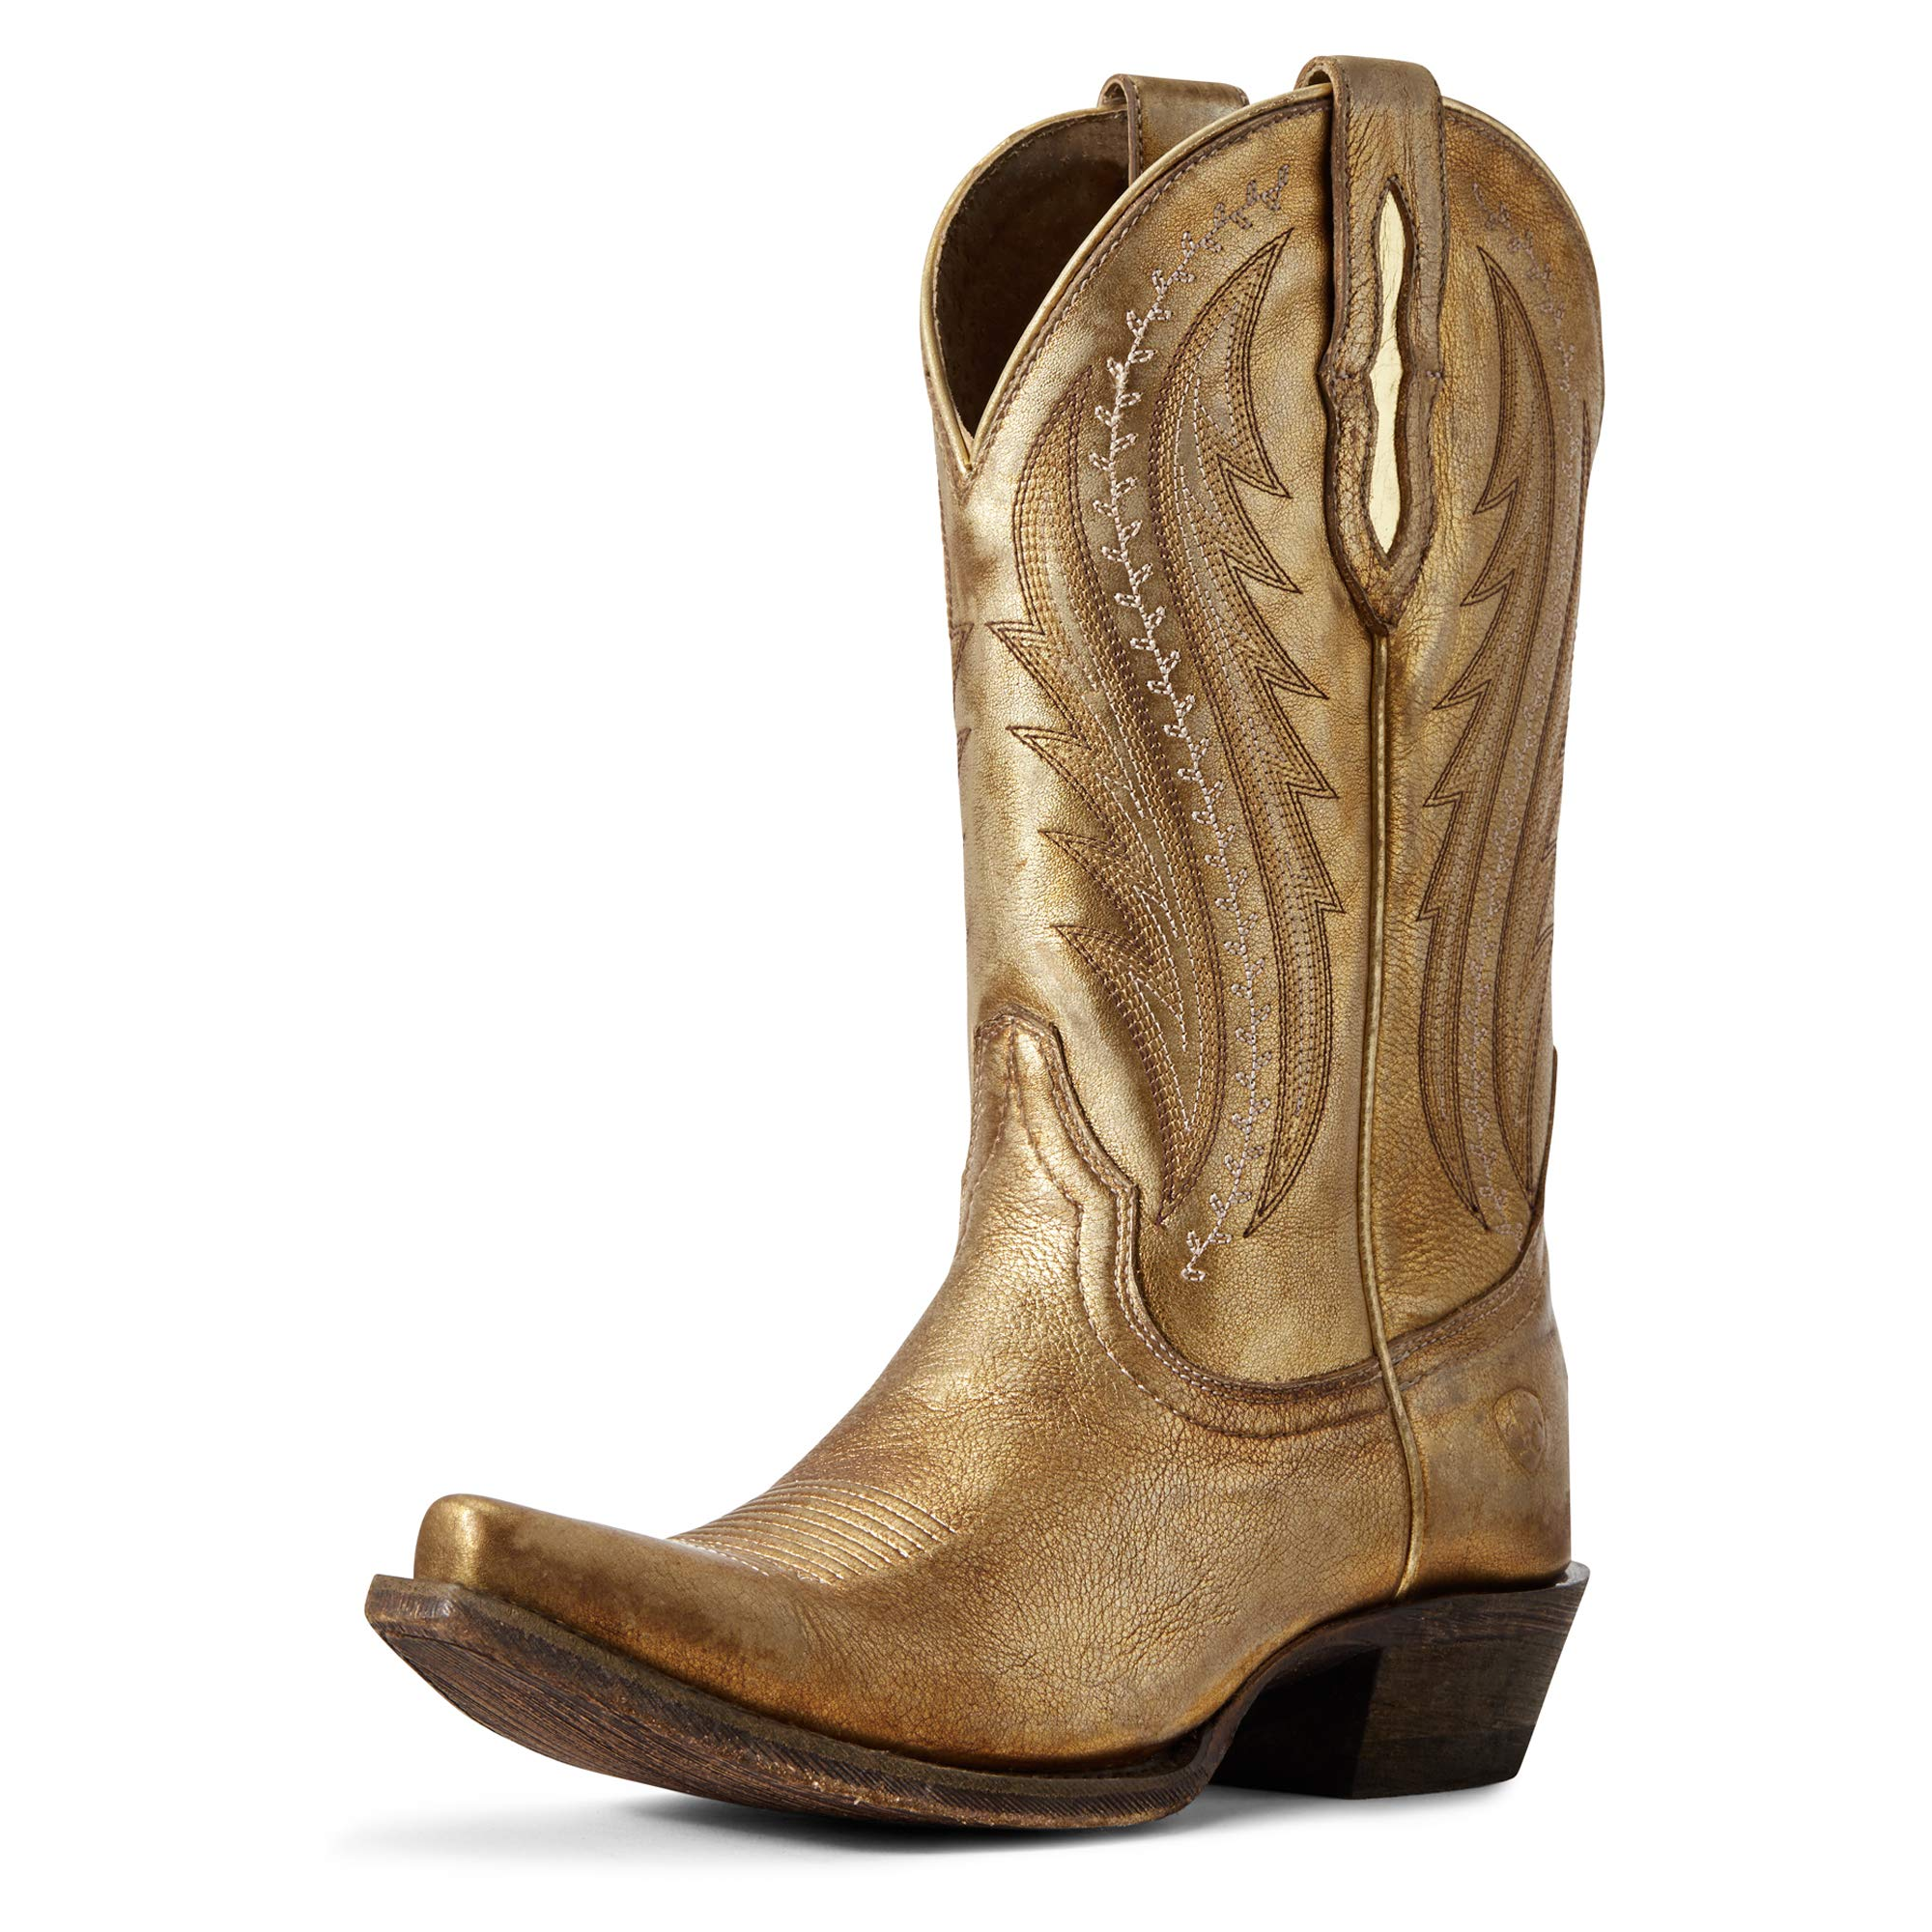 ARIAT Women's Tailgate Western Boot Distressed Gold Size 9.5 B/Medium Us by ARIAT